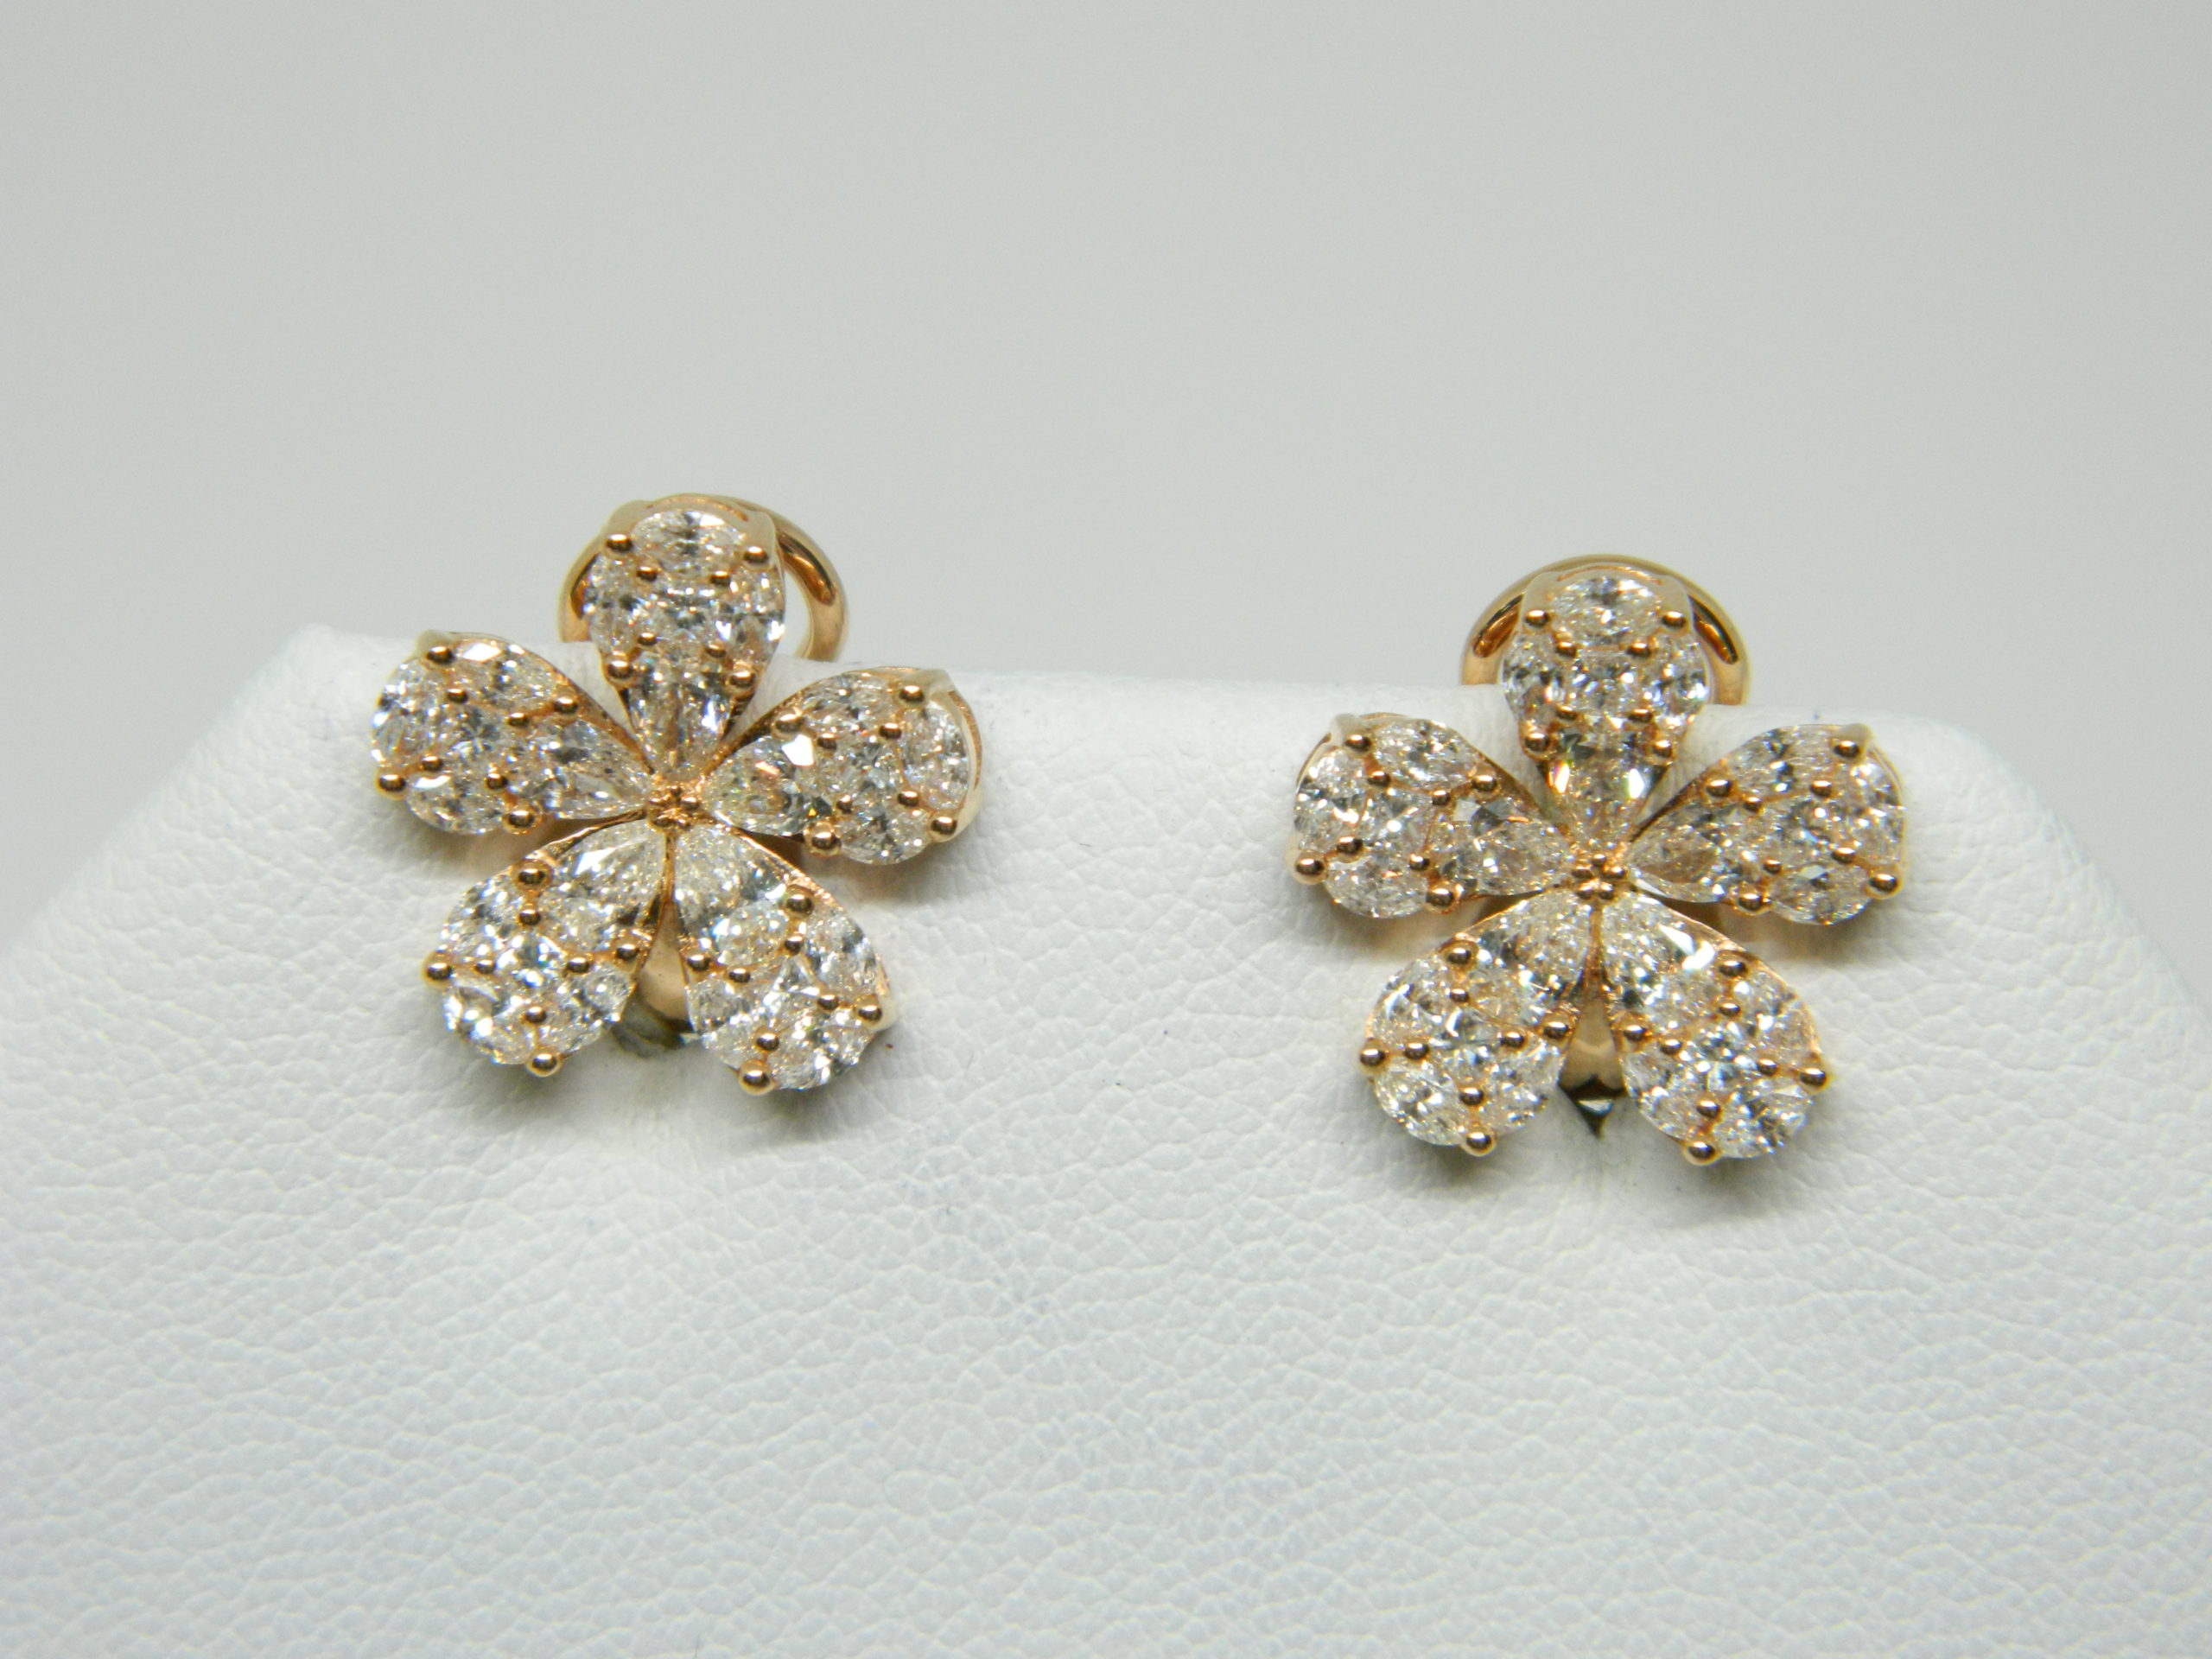 18 Karat Rose Gold Button Mounted Earrings 10 Pear Cut Diamonds weighing 0.87cts, 30 Marquise Cut Diamonds weighing 0.91cts, 10 Princess Cut Diamonds weighing 0.28cts.